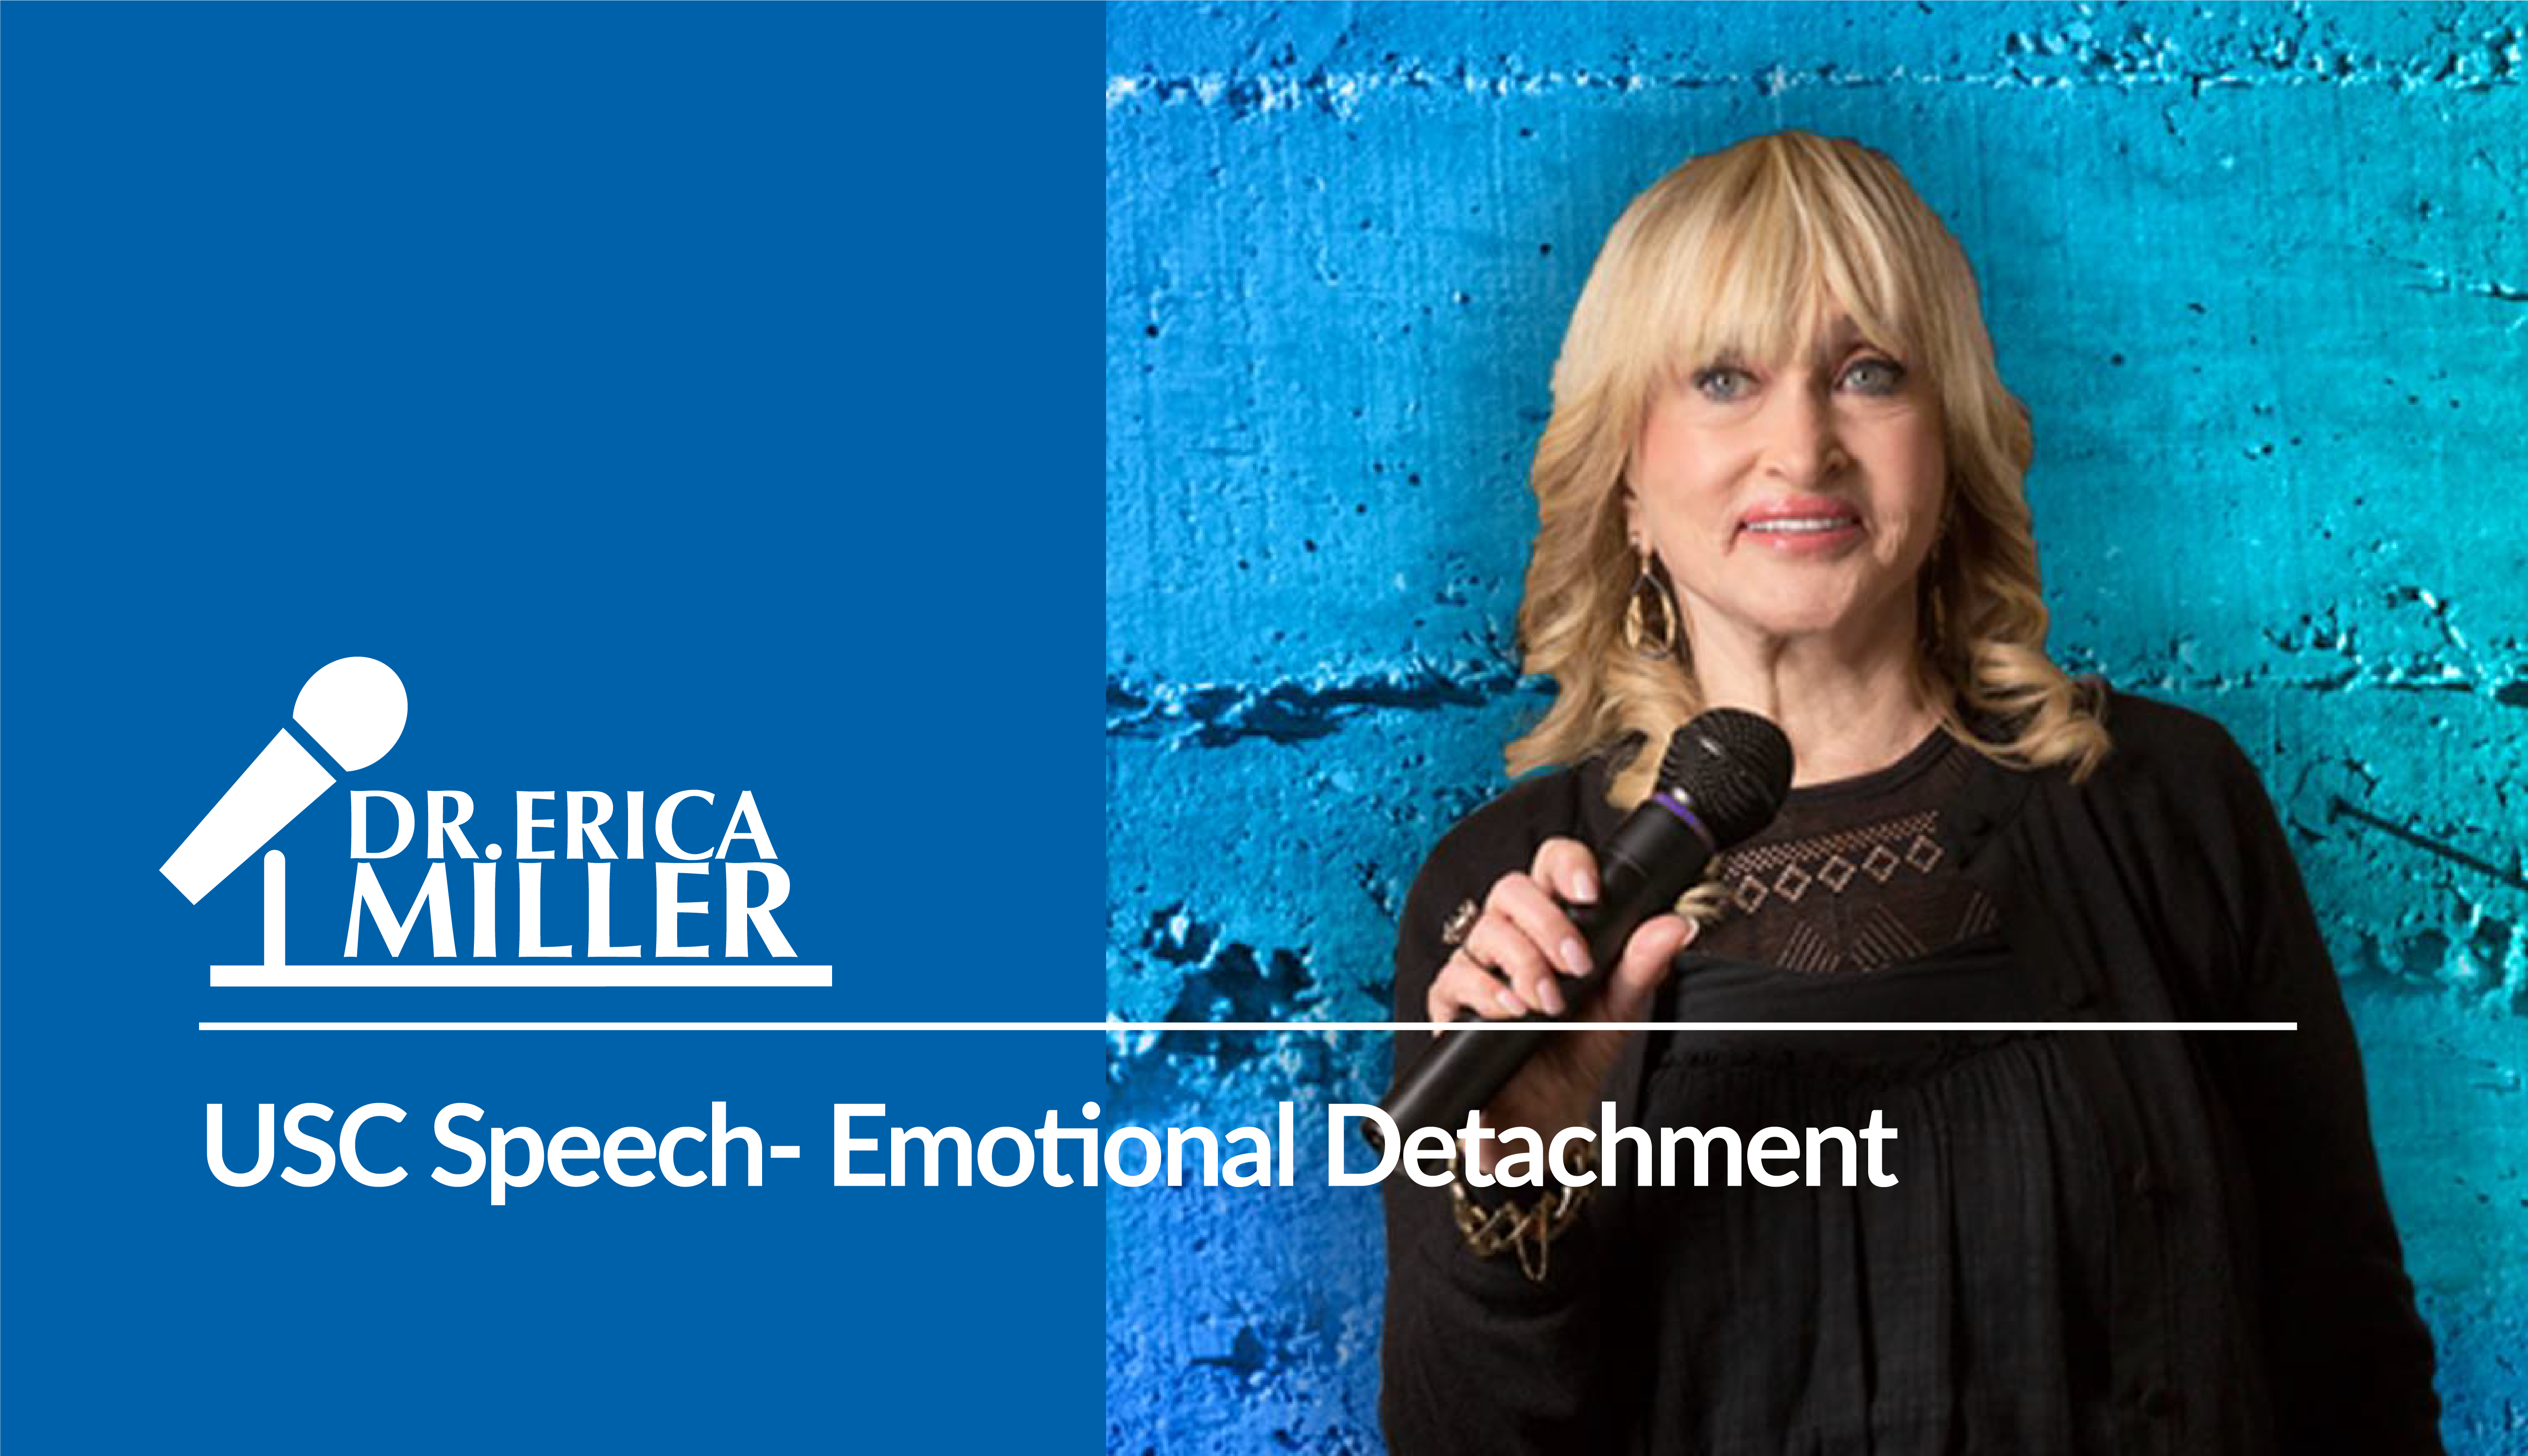 USC Speech- Emotional Detachment